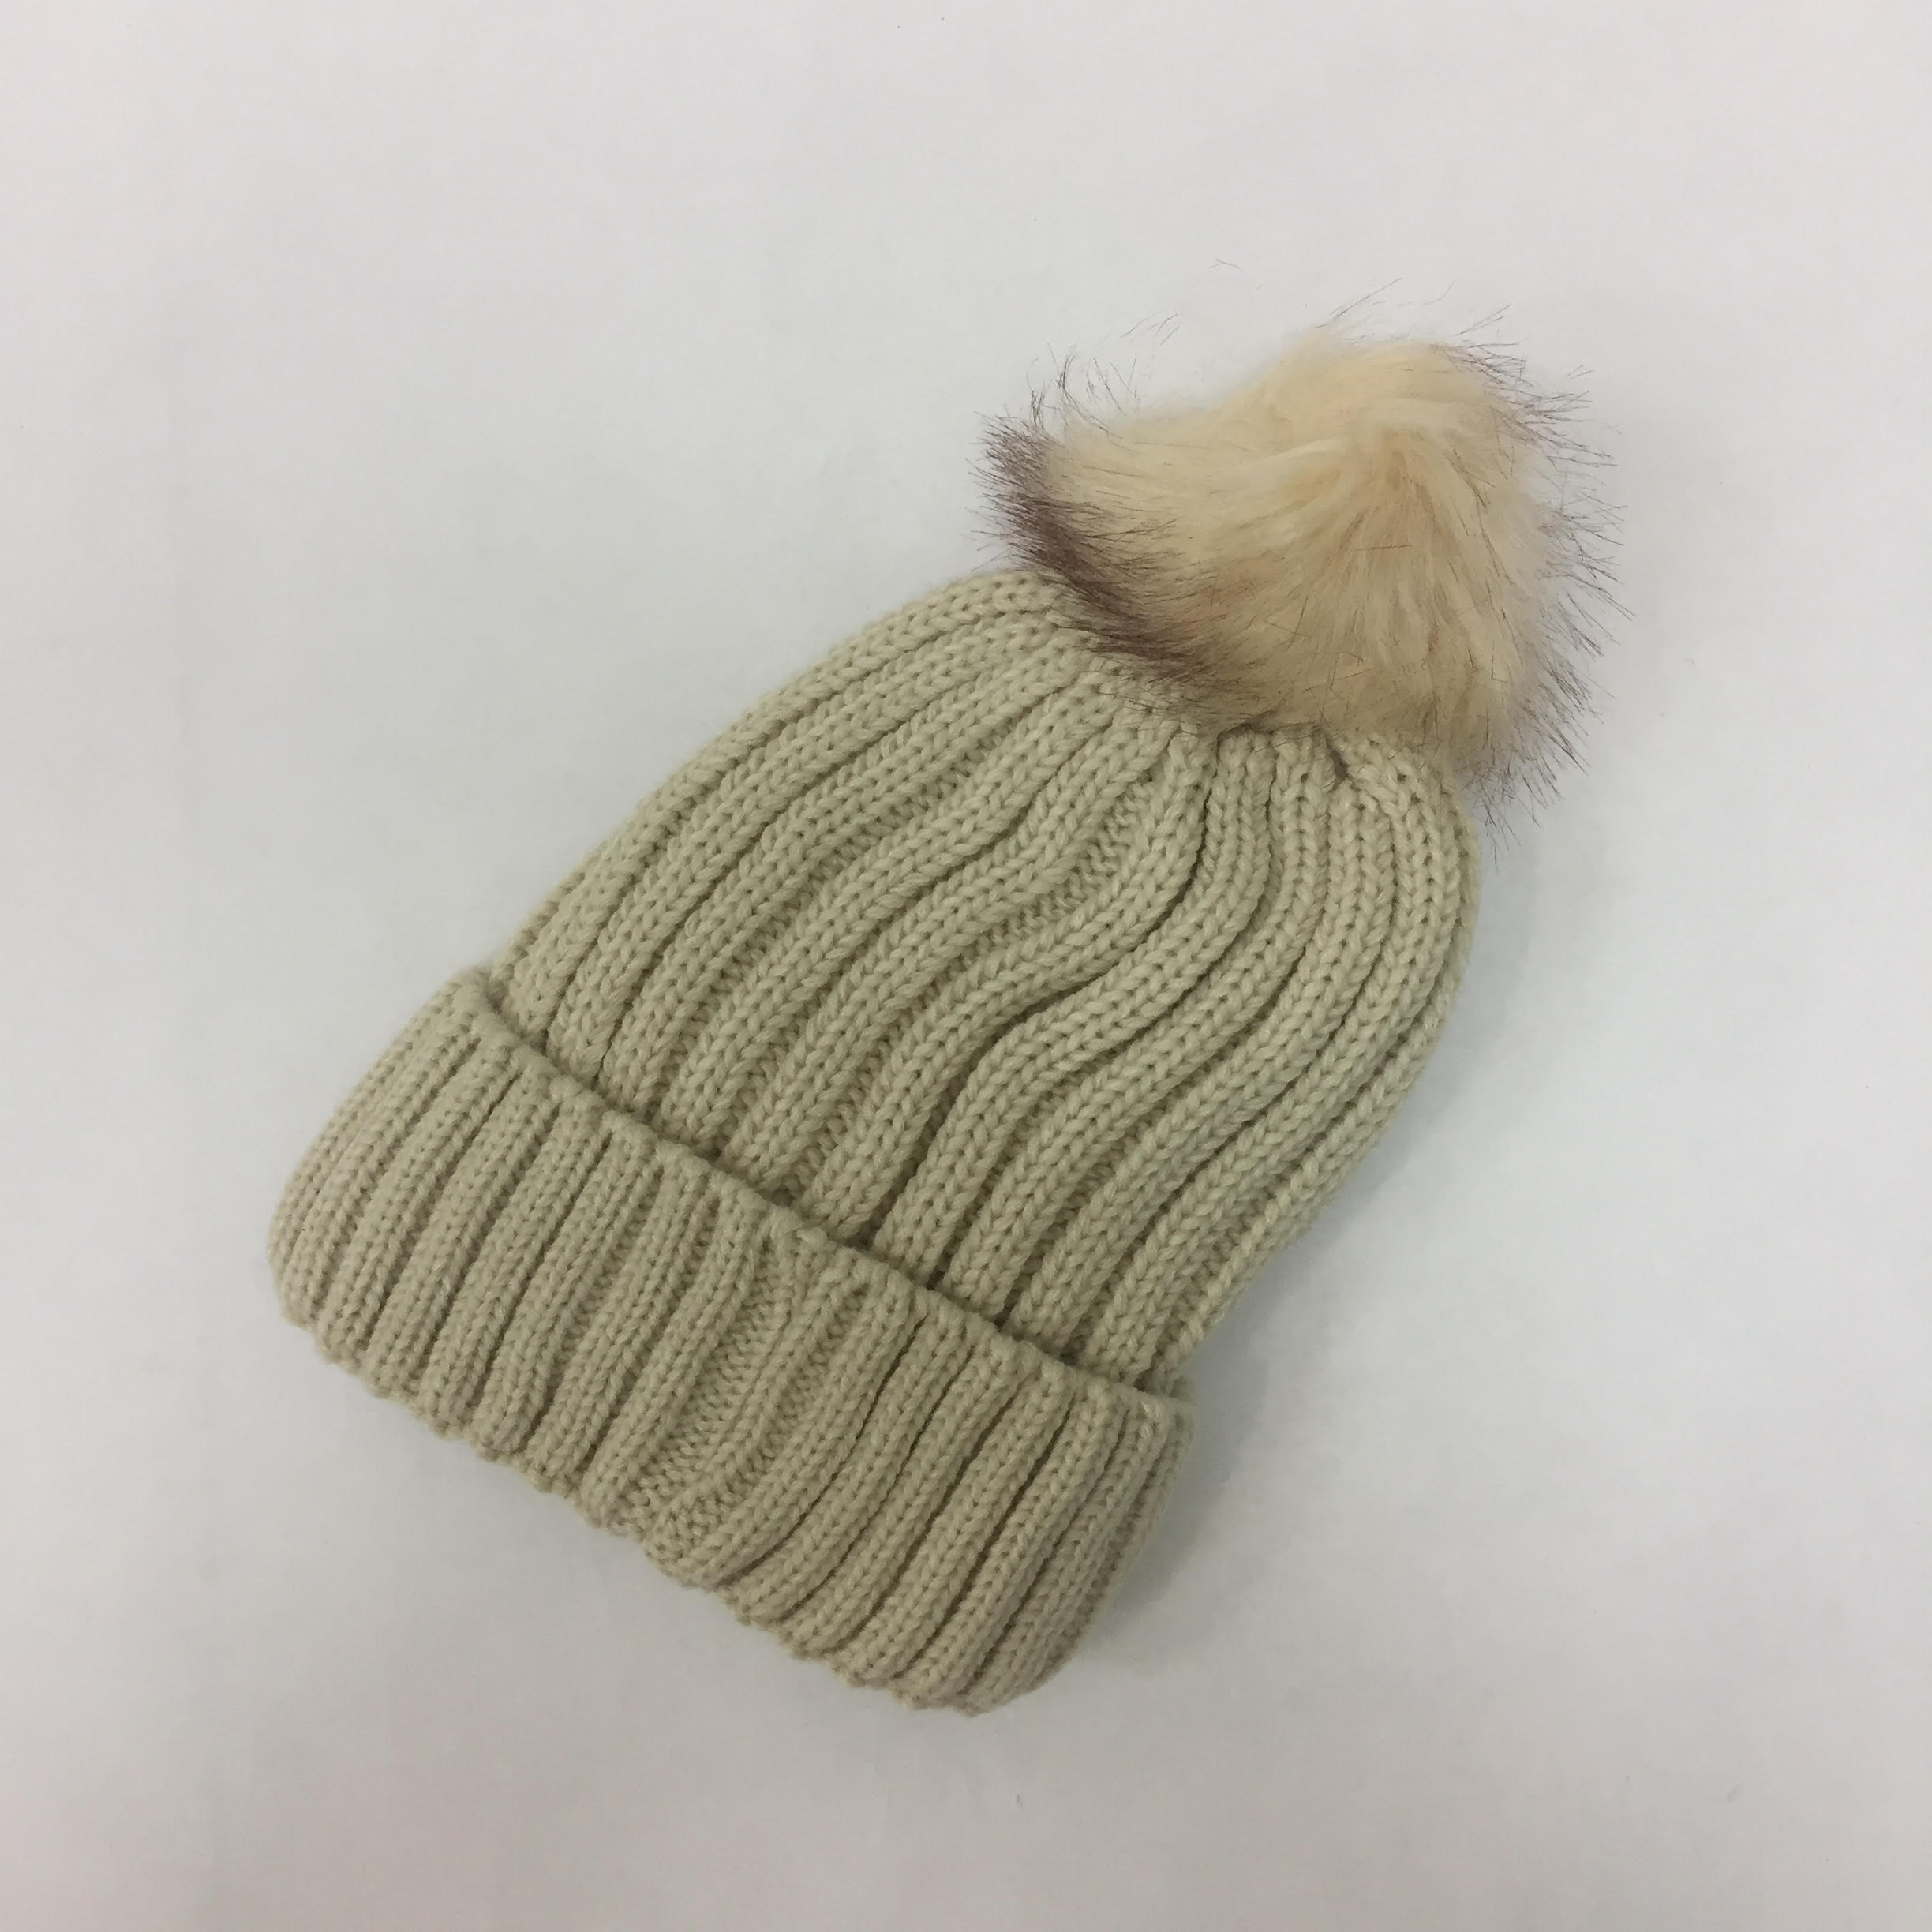 89f0e10988b Thick Cable Knitted Fleece Lined Pom Pom Beanie Hat H53096  H53096 ...